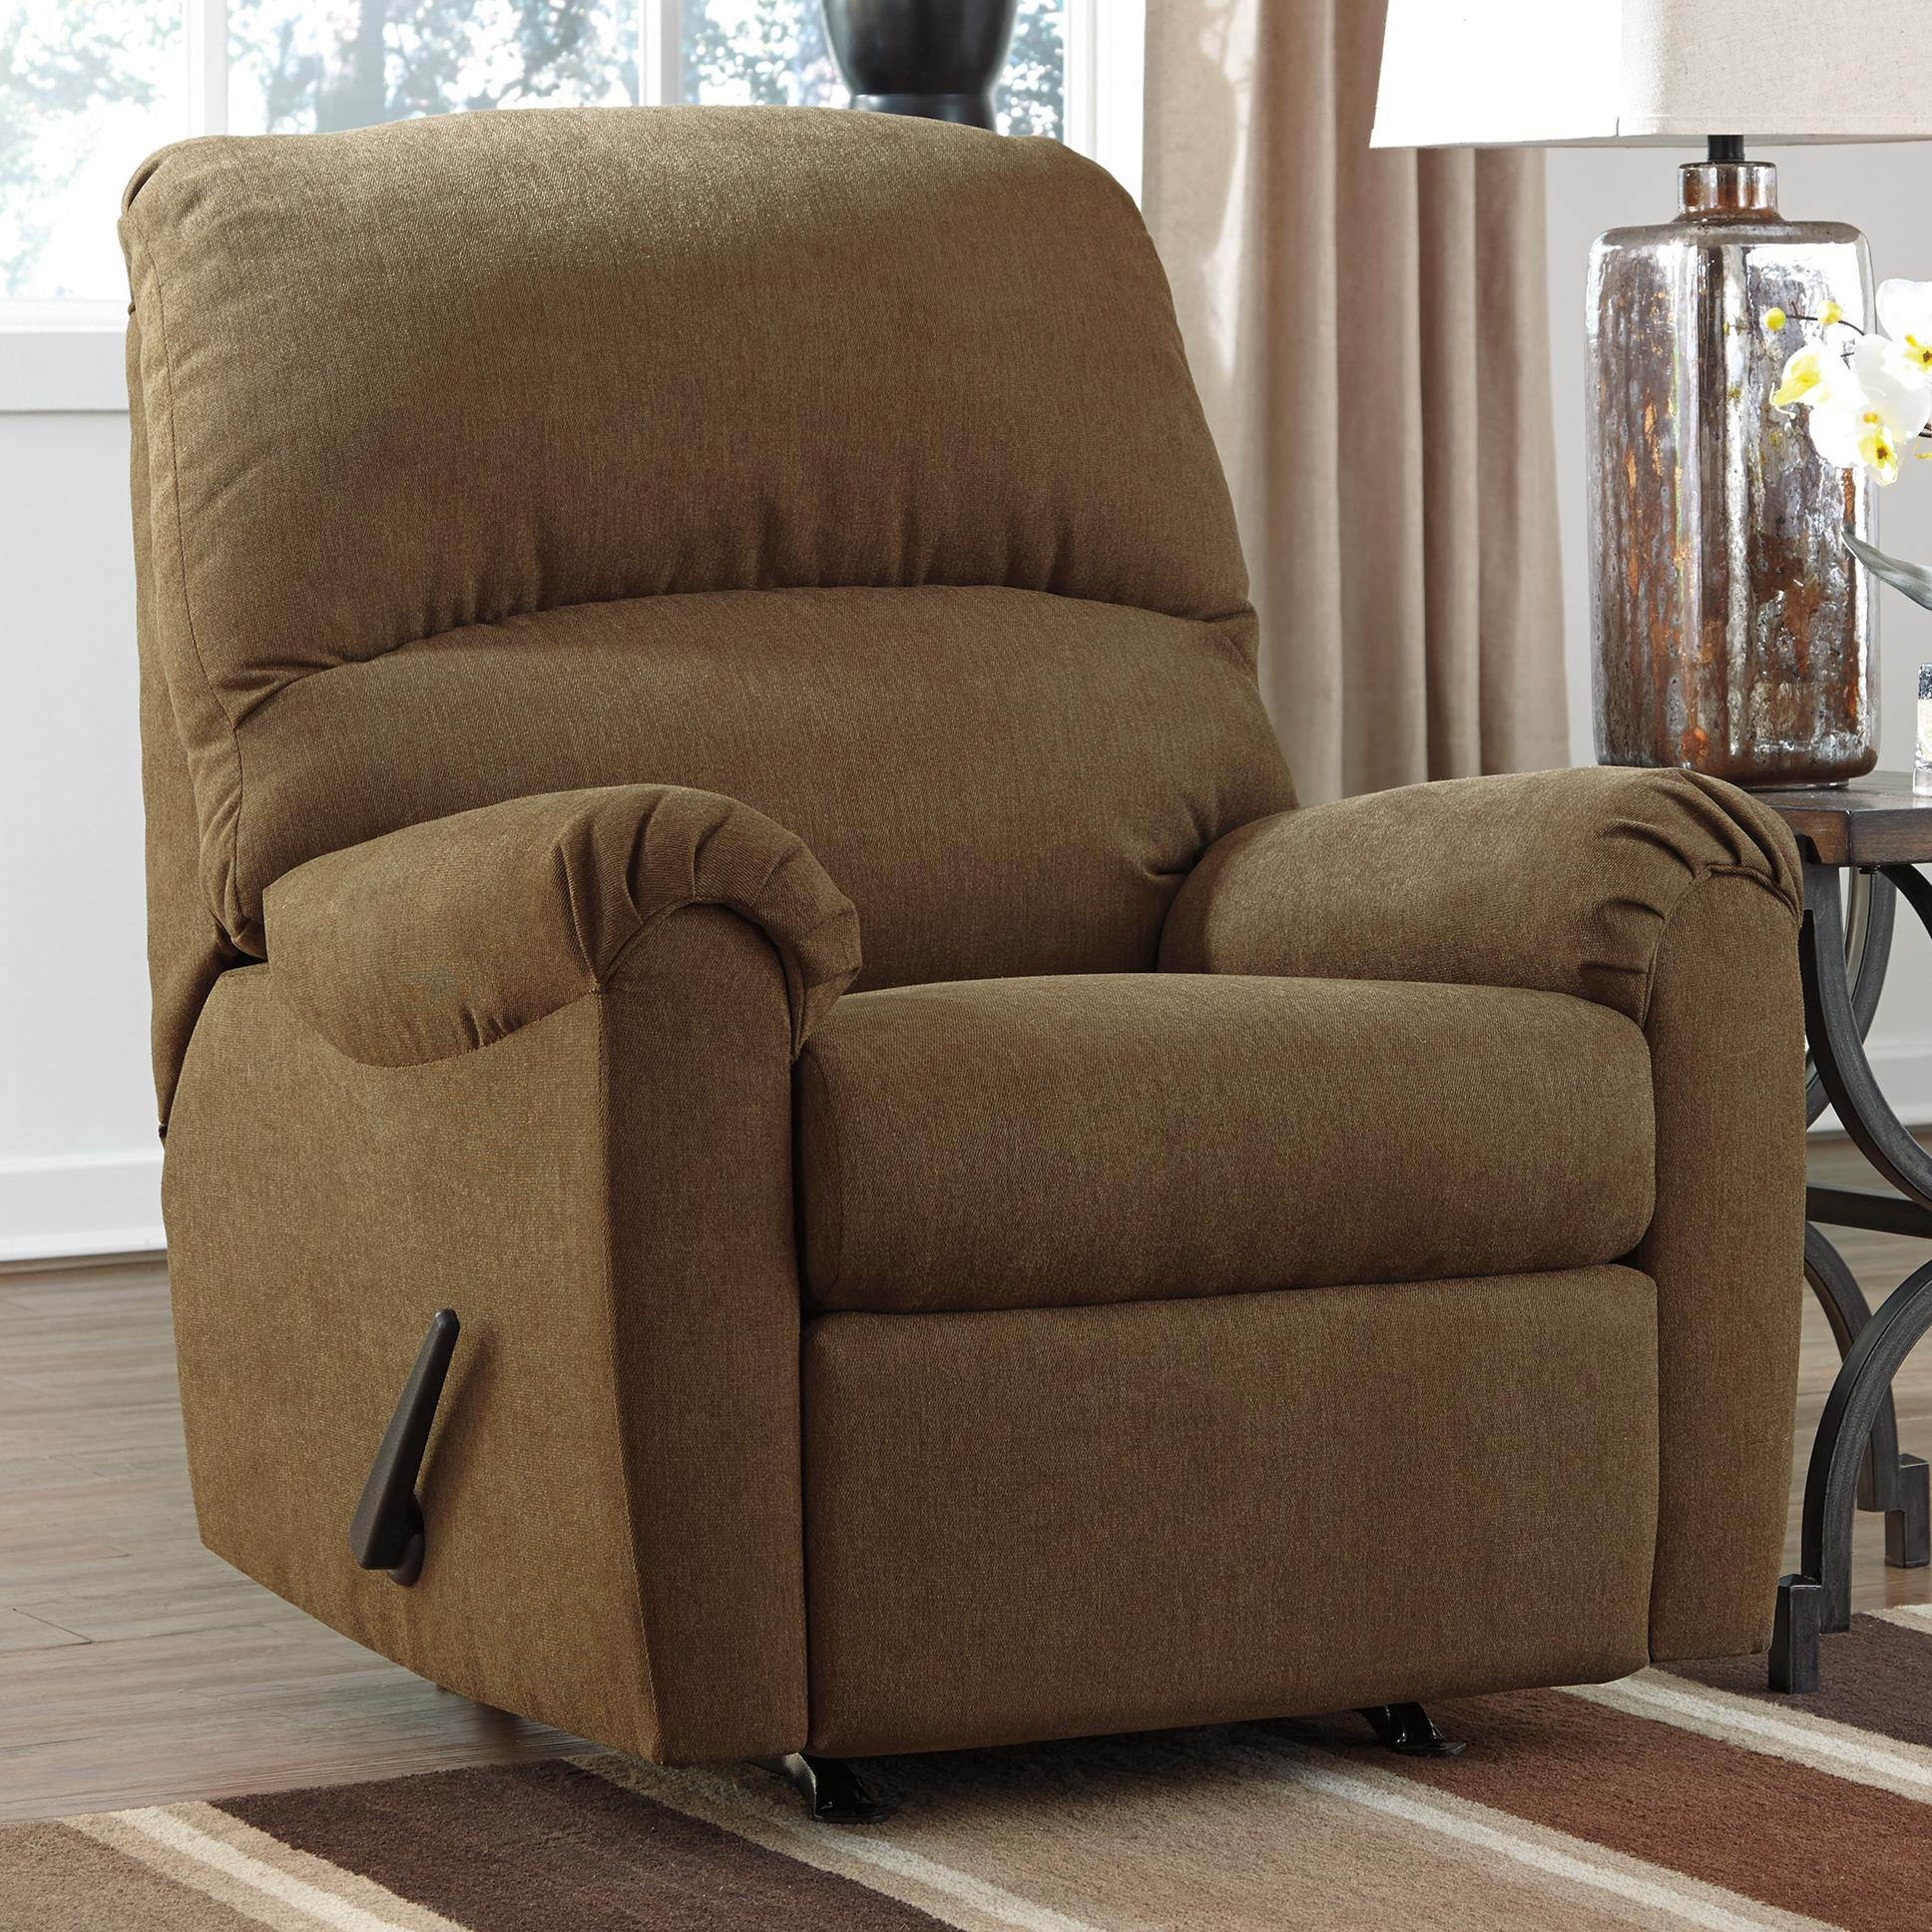 Signature Design by Ashley Zeth - Basil Rocker Recliner - Item Number: 2710325